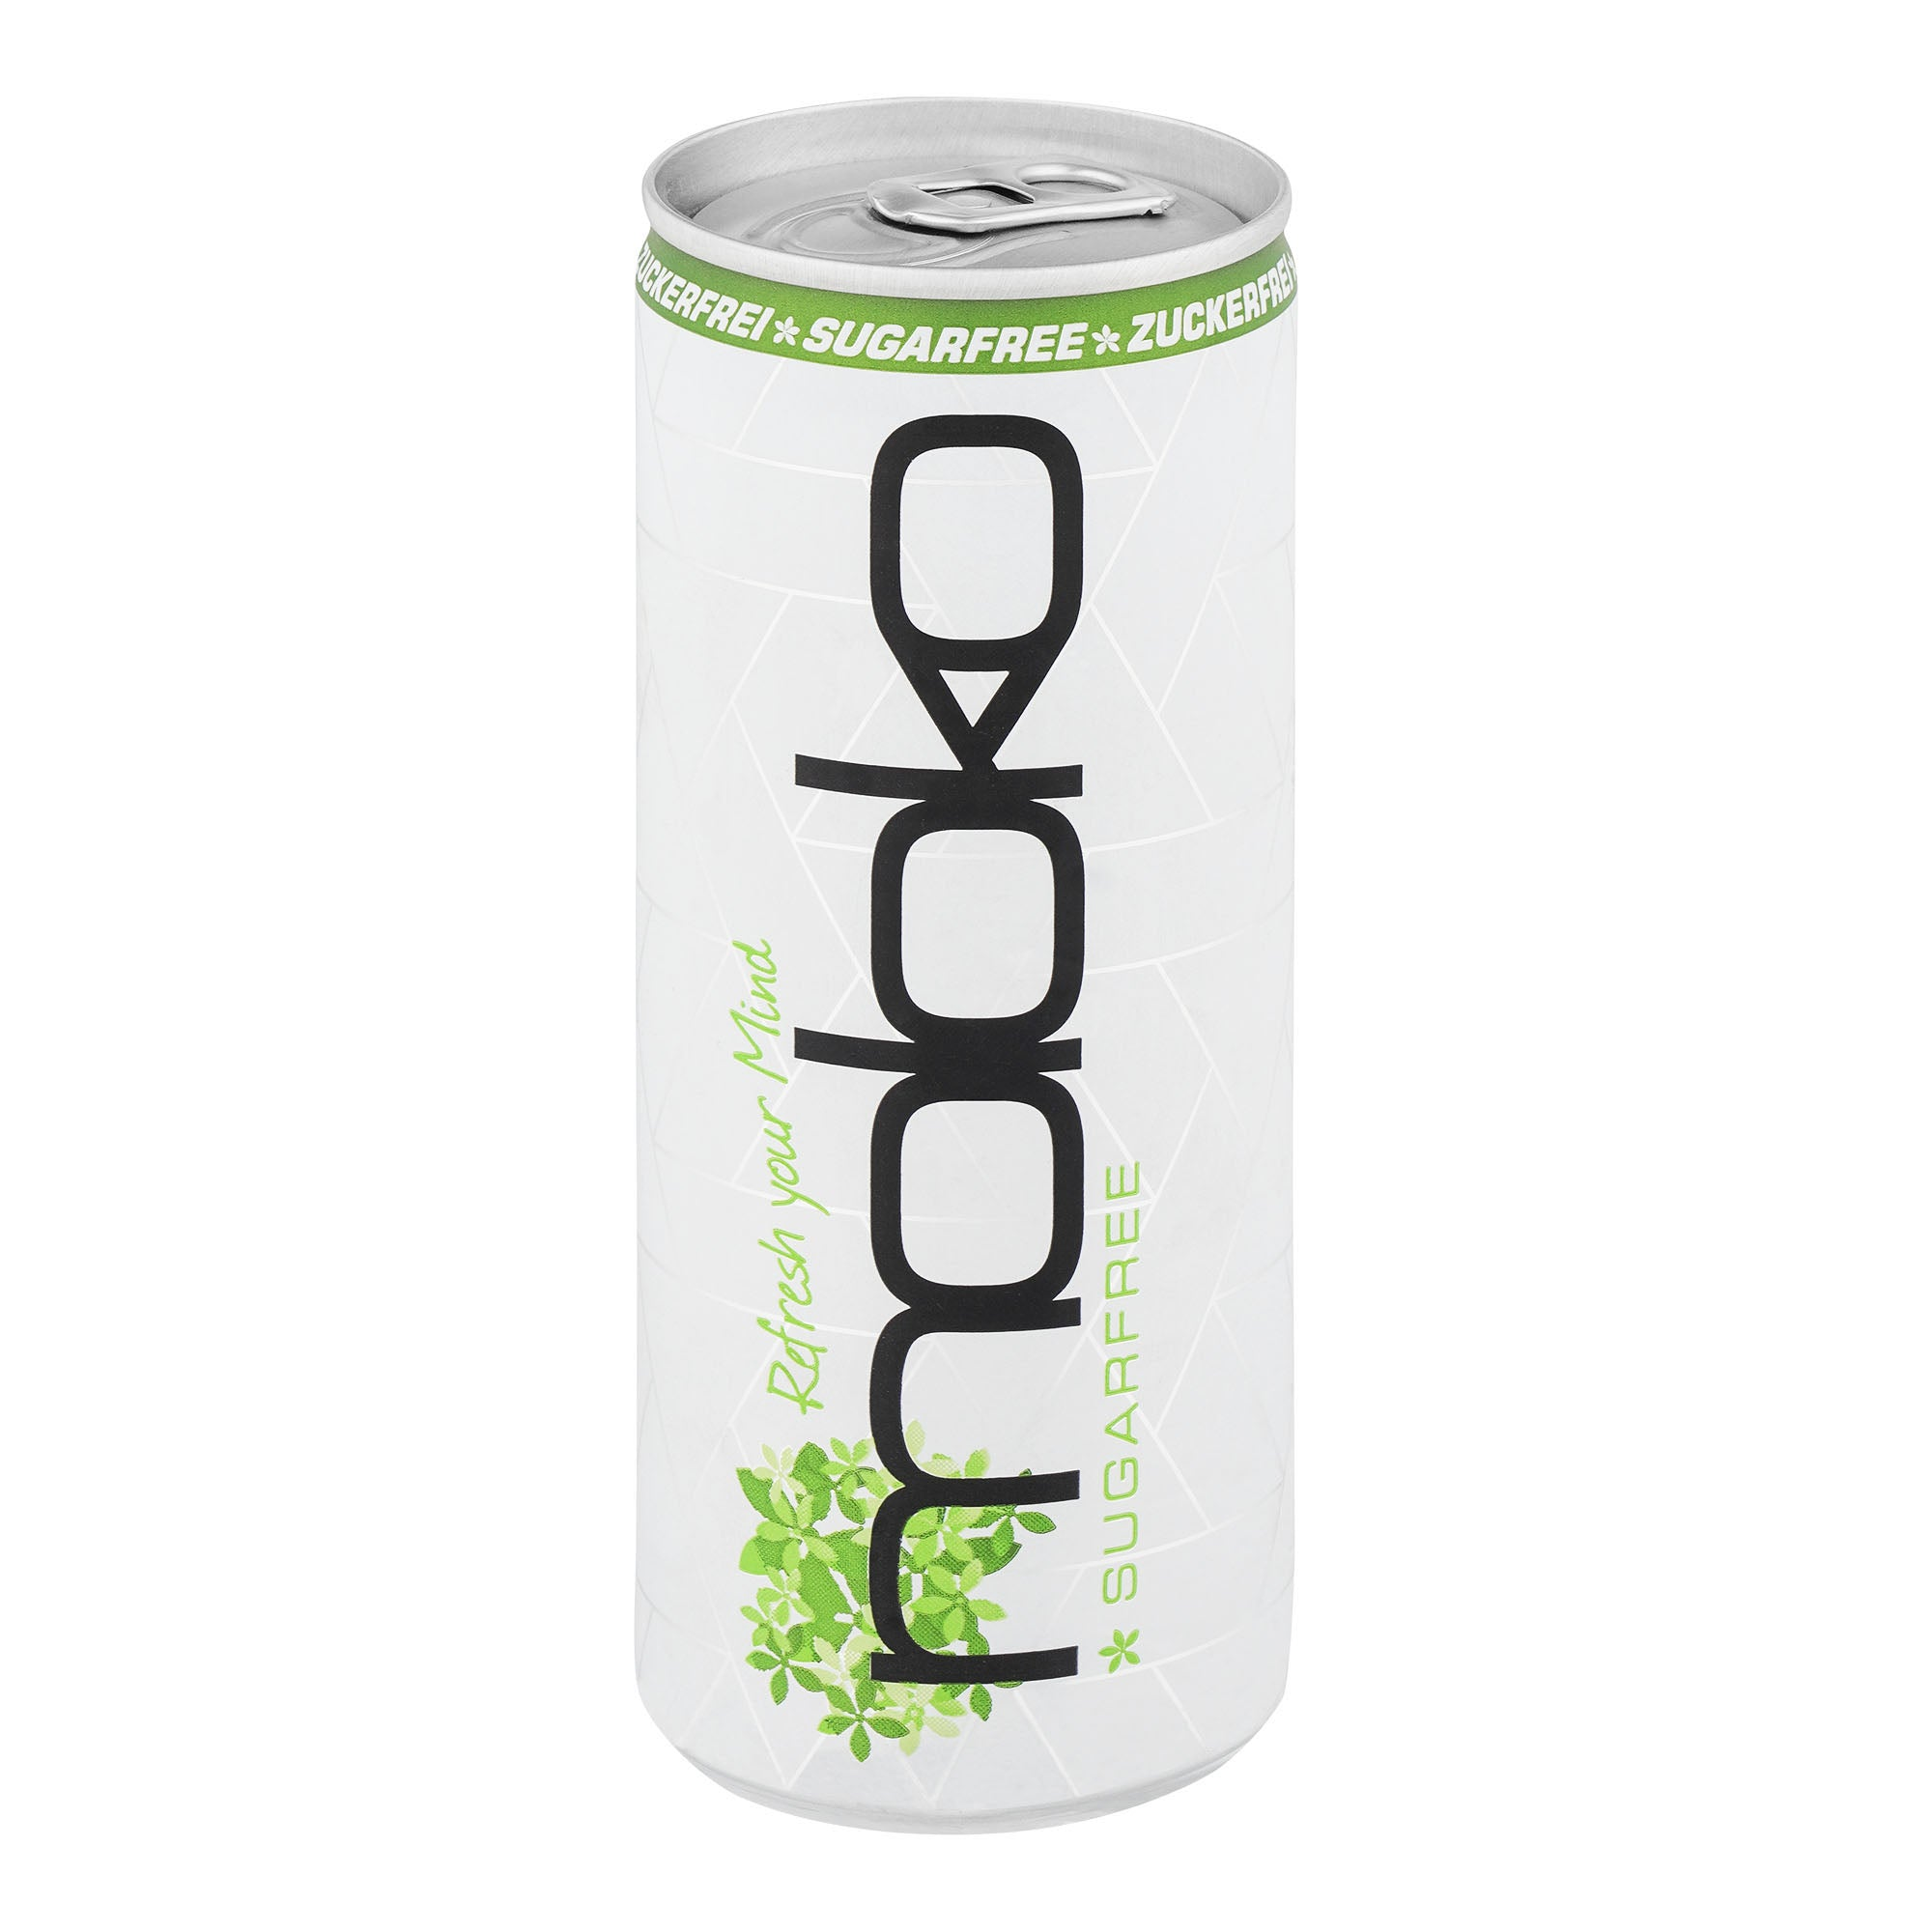 Moloko Softdrink Sugarfree 24x250ml